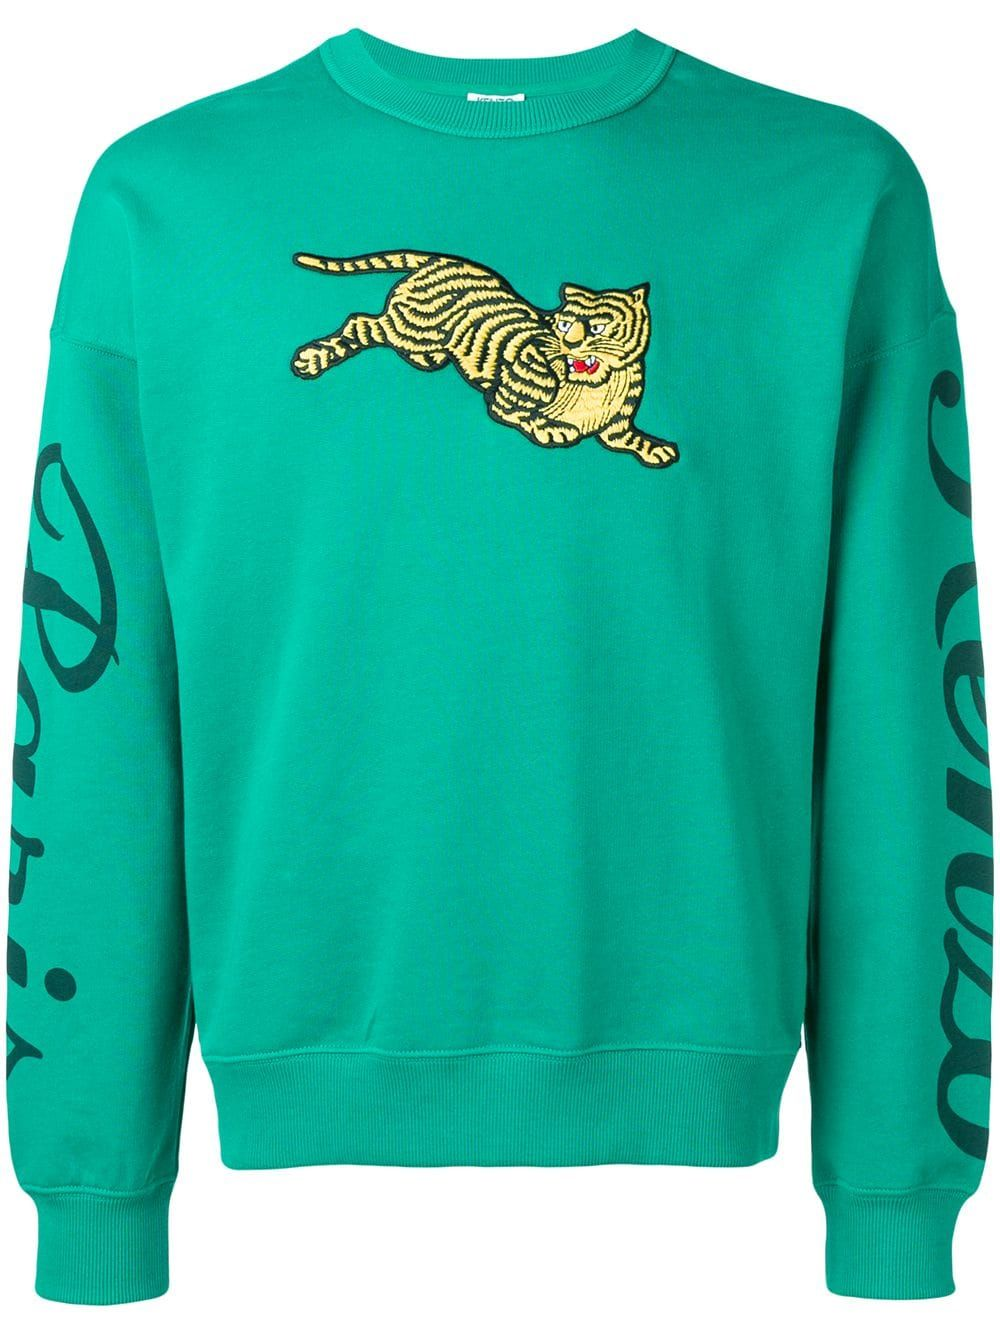 0d6e15a7 KENZO KENZO FLYING TIGER EMBROIDERED HOODIE - GREEN. #kenzo #cloth ...